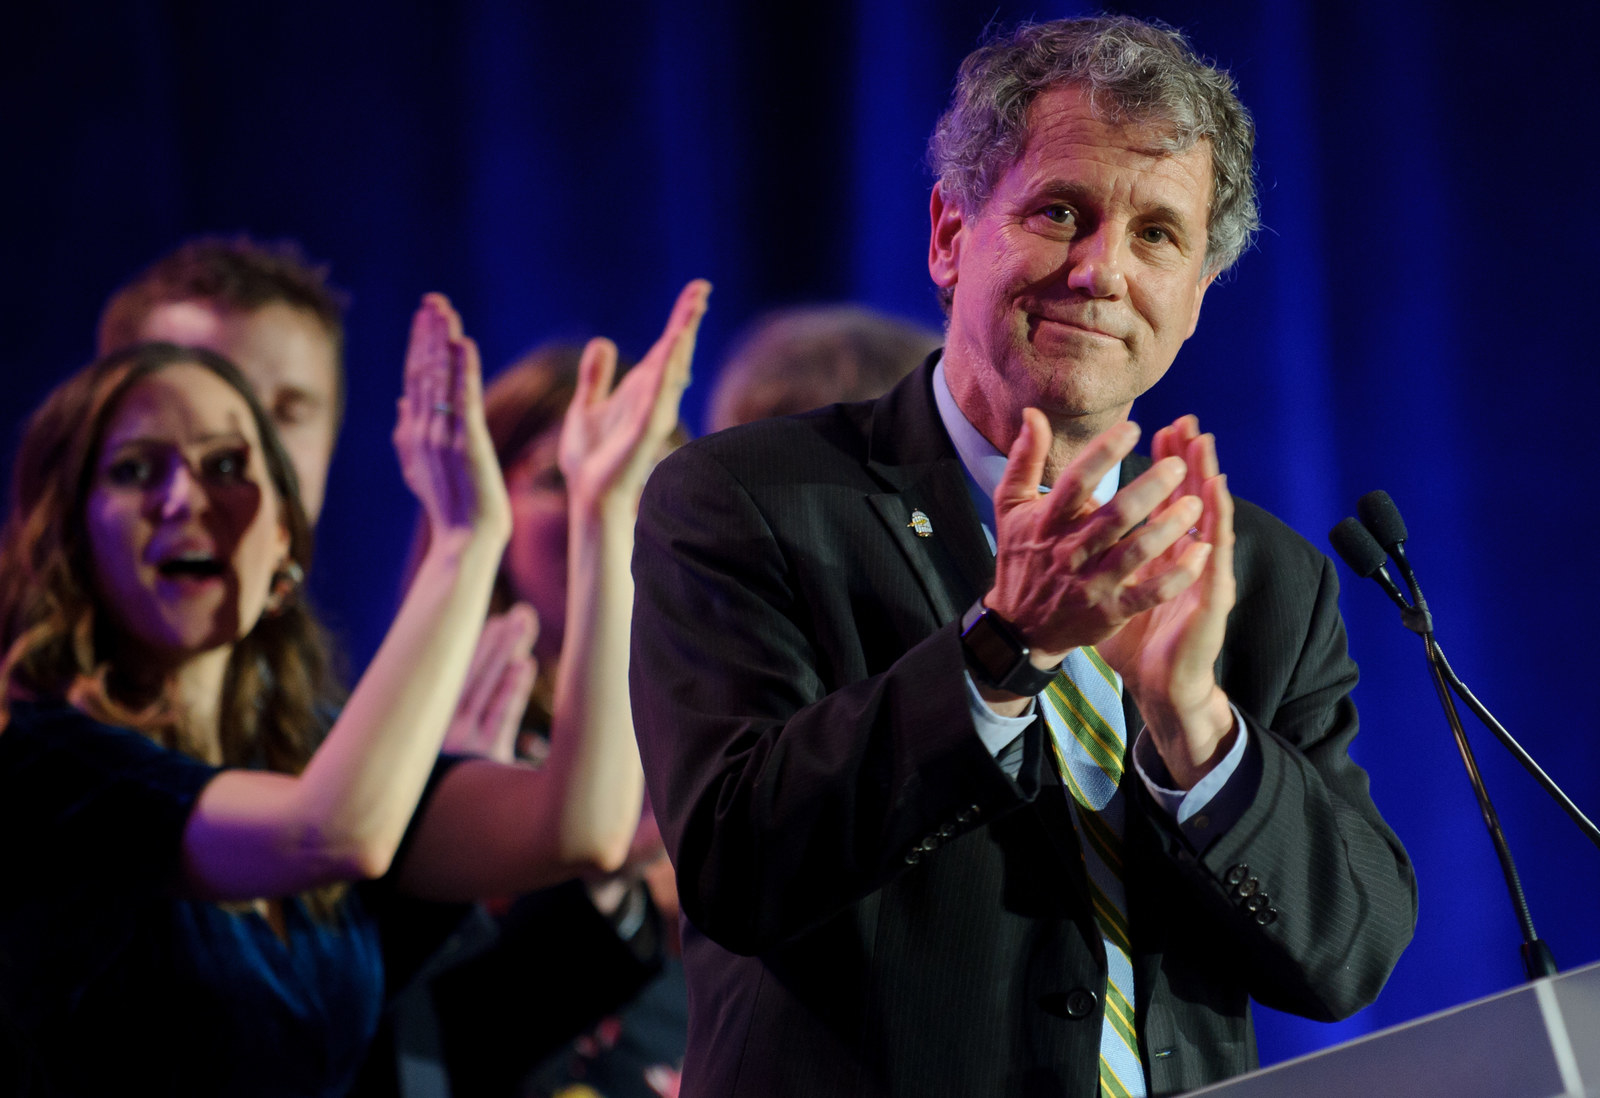 Sherrod Brown Wants Democrats To Have A Pro-Worker Message In 2020. He's Not Sure Anyone Can Deliver It Better Than He Can.